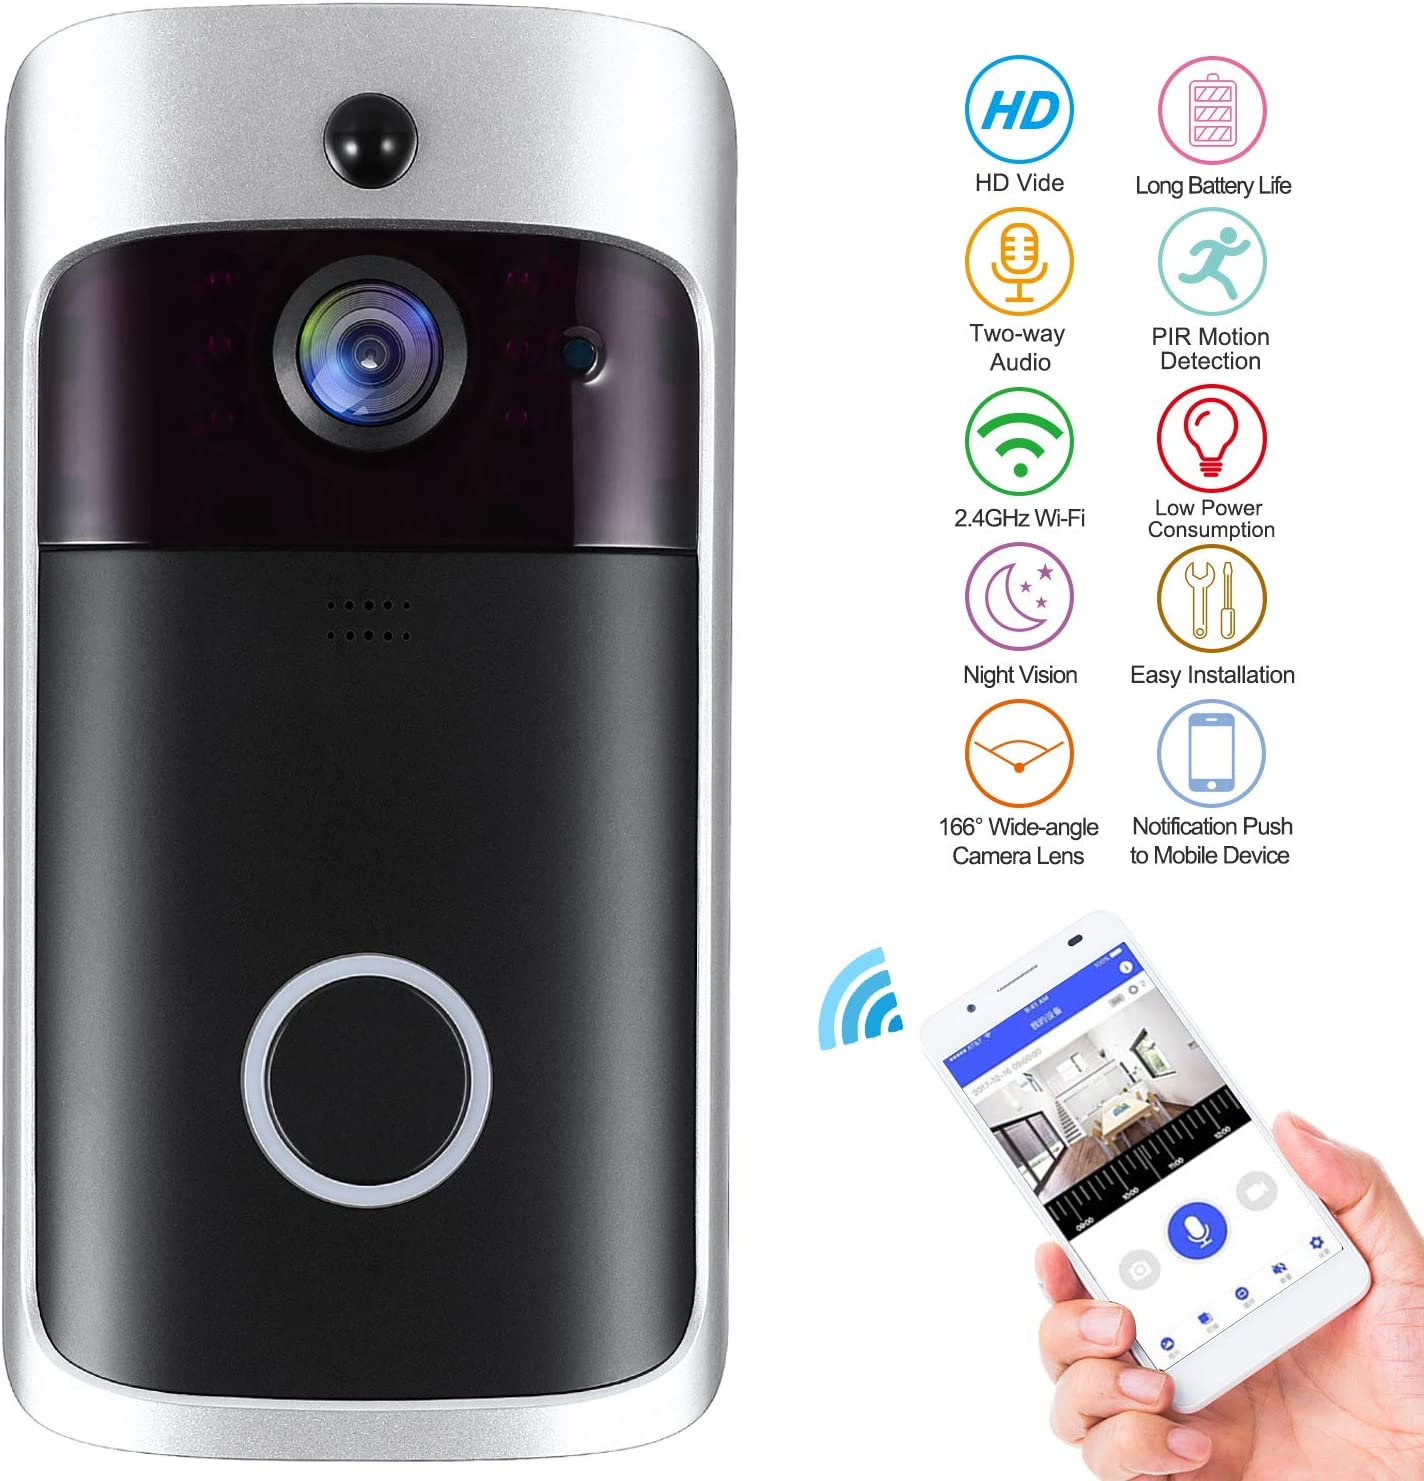 WiFi Smart Video Doorbell,Nestling Wireless Door Bell Smart Home 720P HD WiFi Camera Security with Two-Way Talk Video,PIR Motion Detection, Night Vision for iOS Android Google